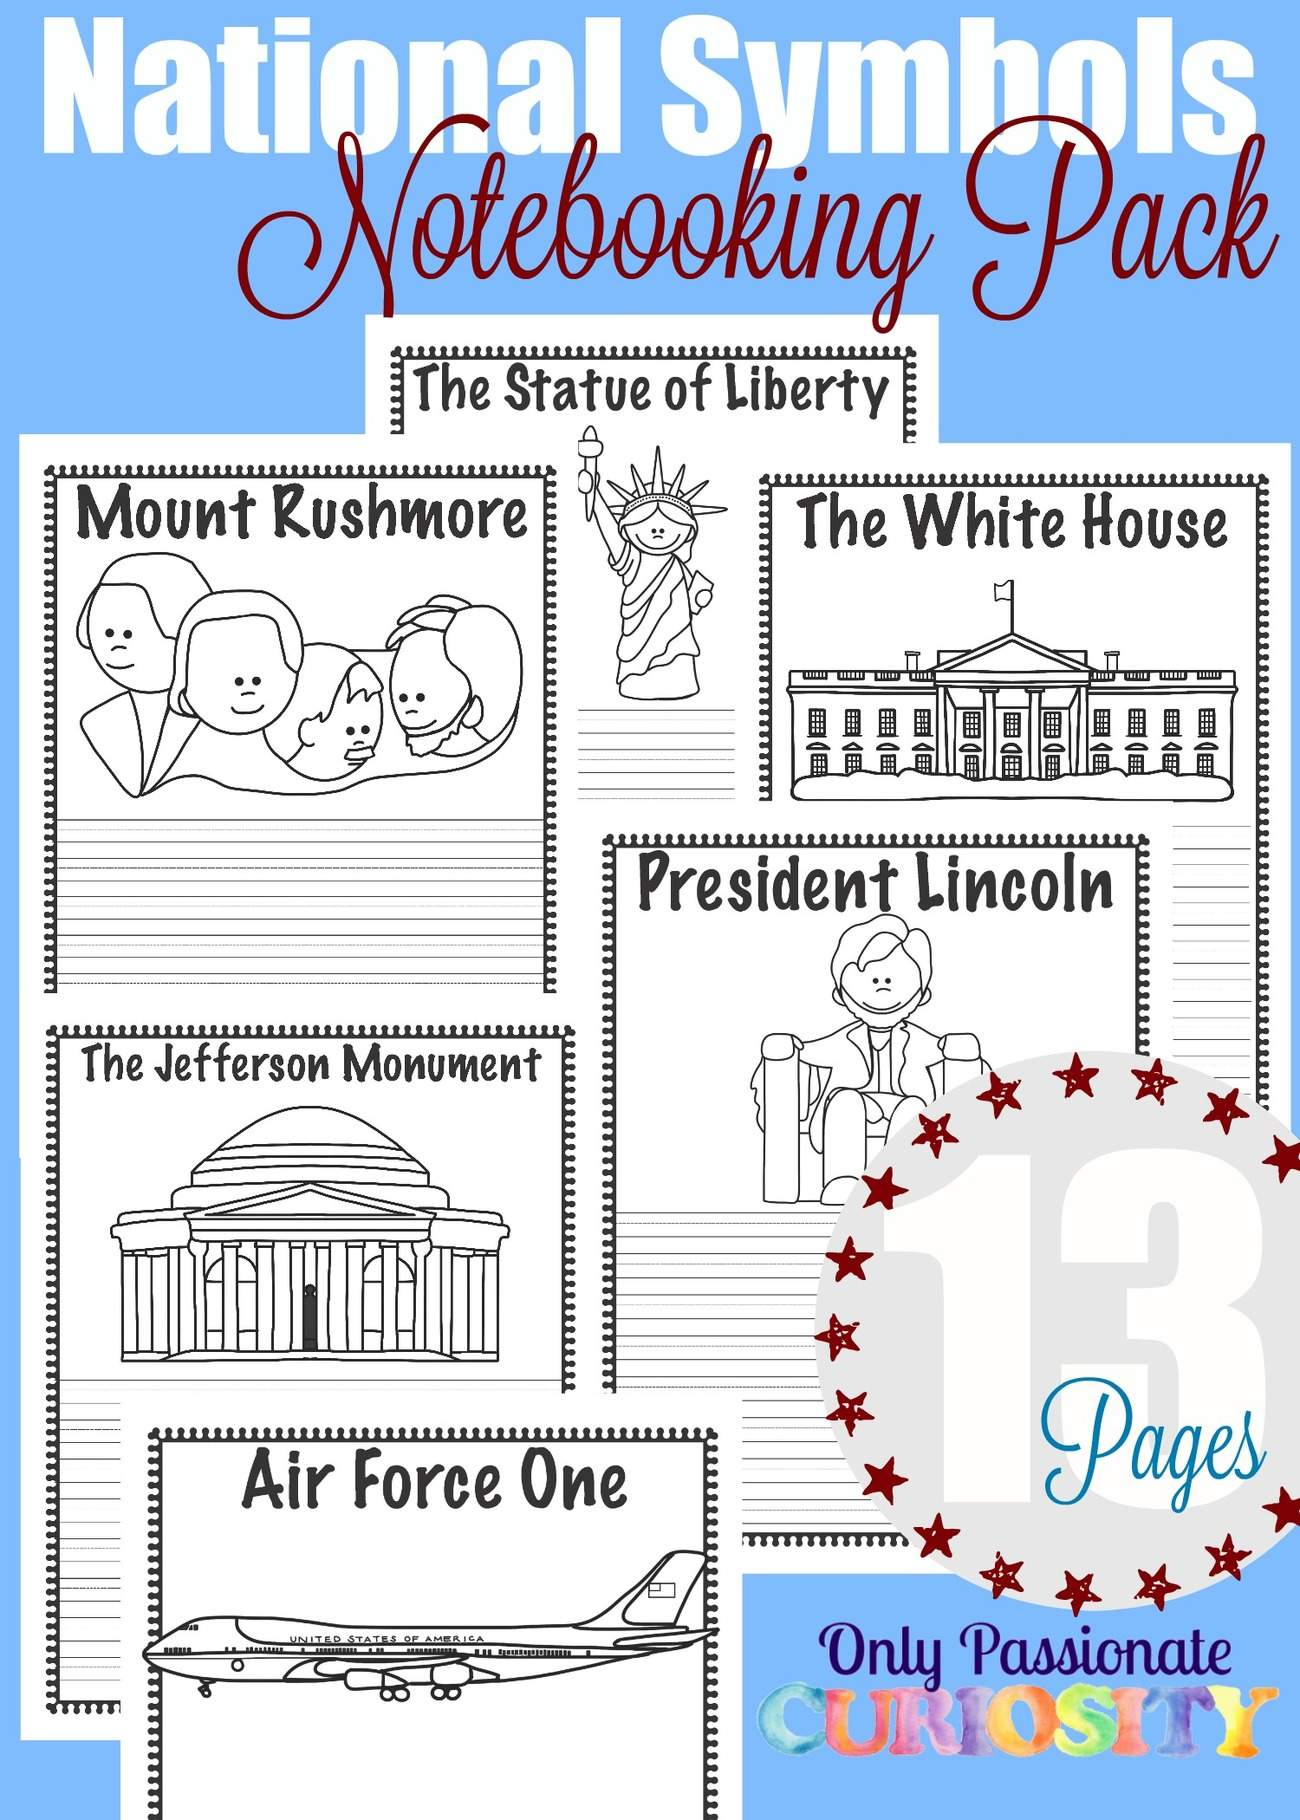 National Symbols Notebooking Pages